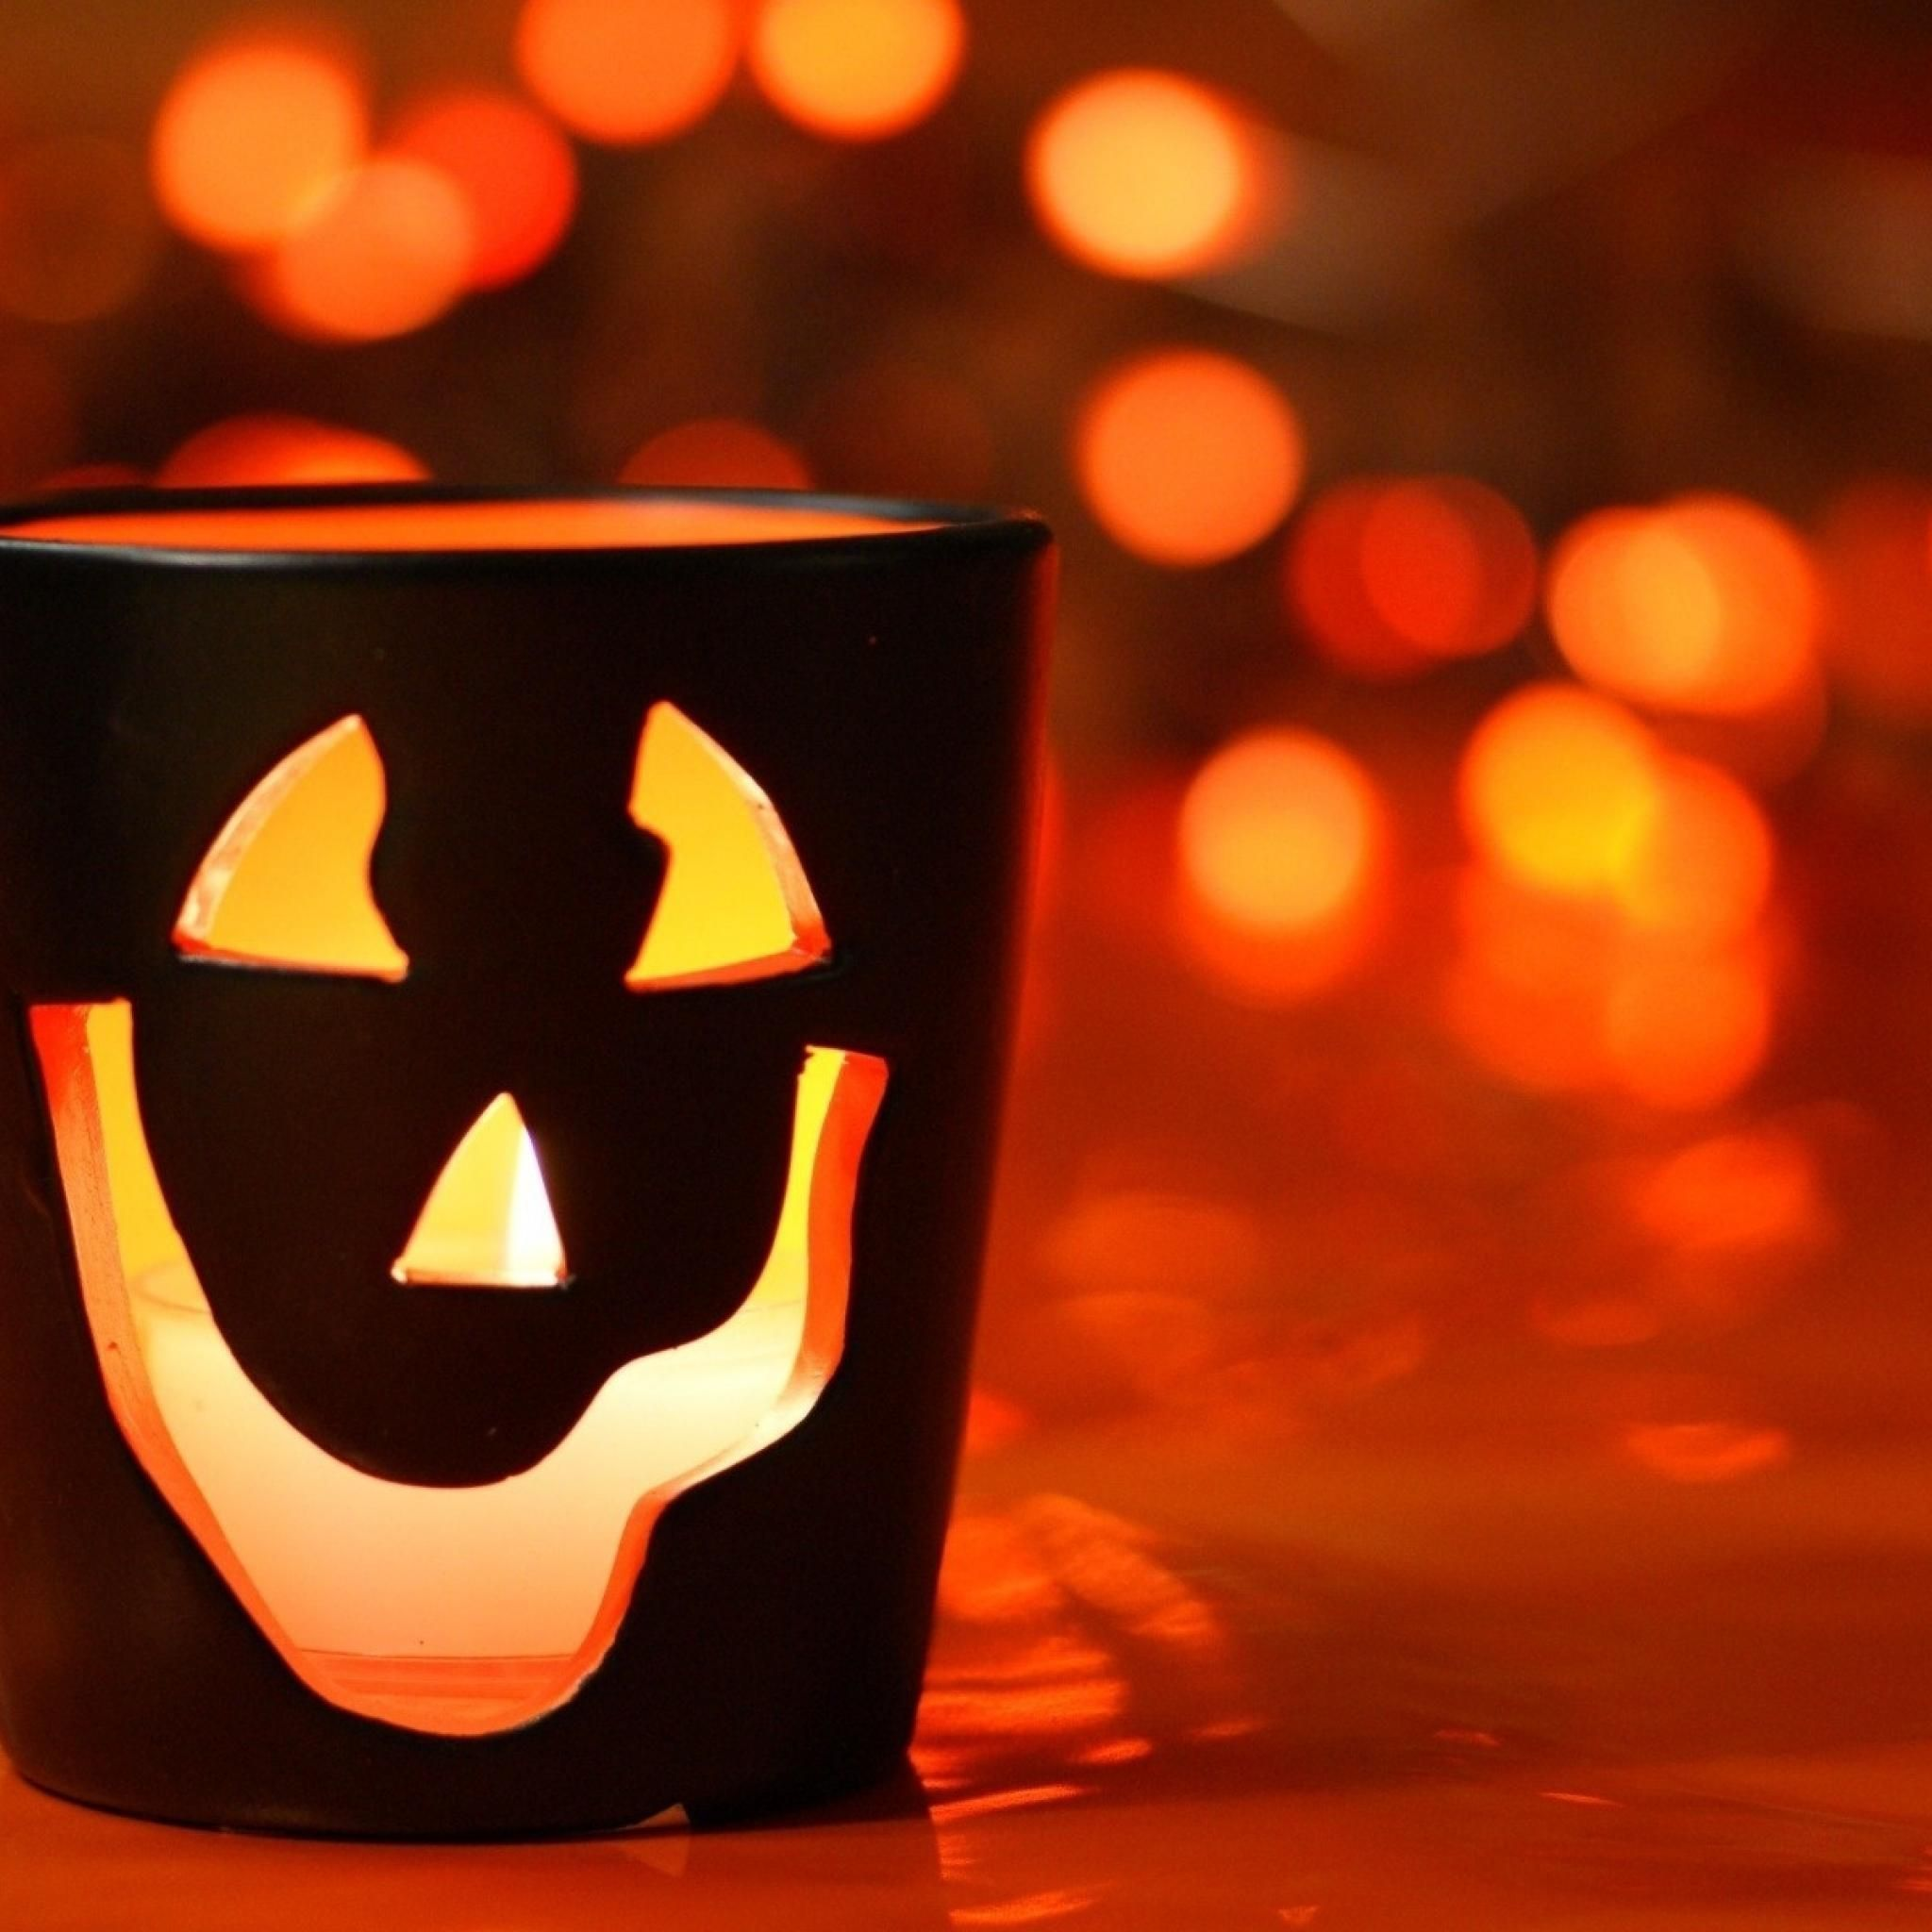 Captivating Download 50 Cute And Happy Halloween Wallpapers HD For Free Good Ideas